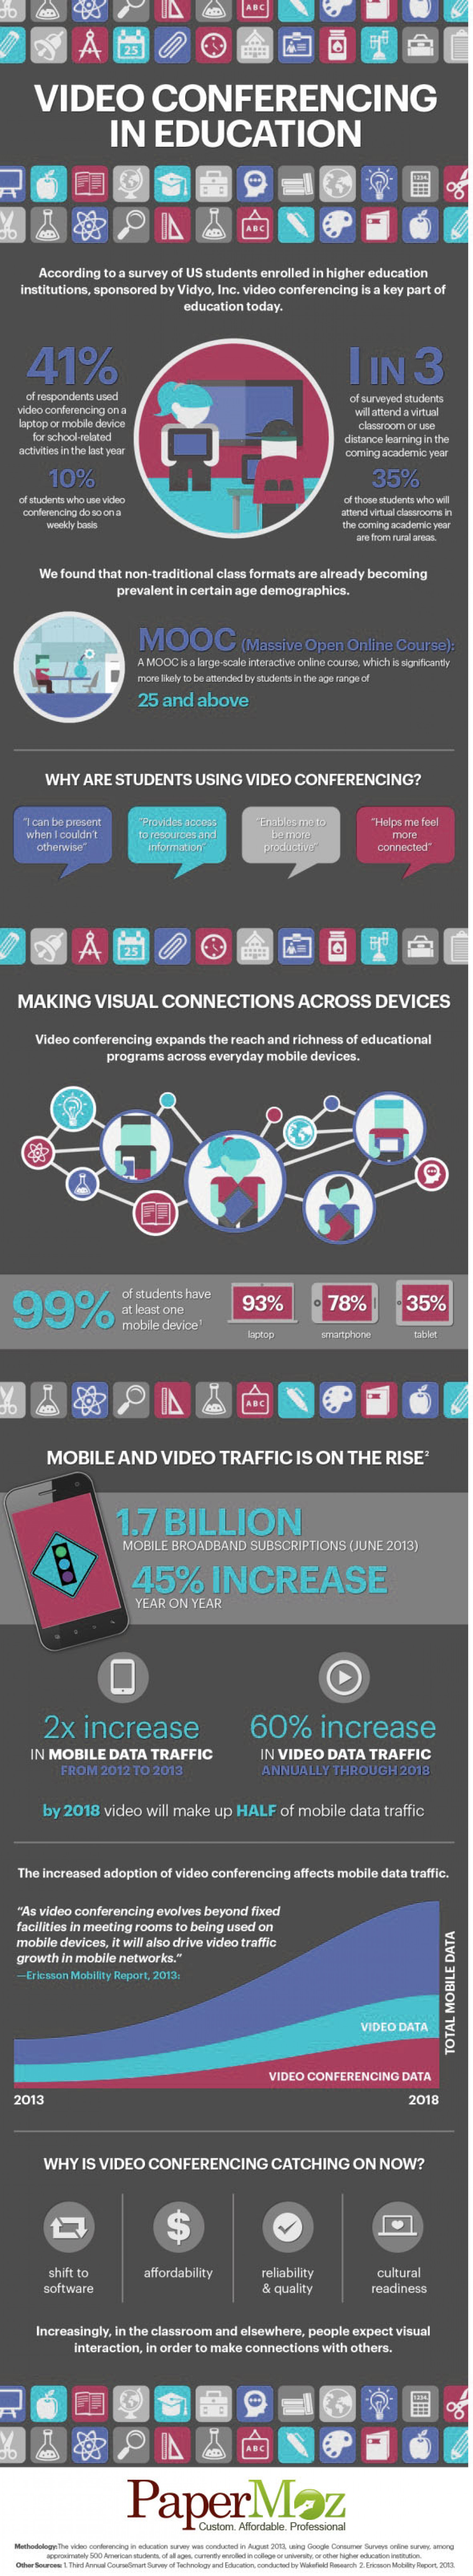 Education via Video Conferencing Infographic